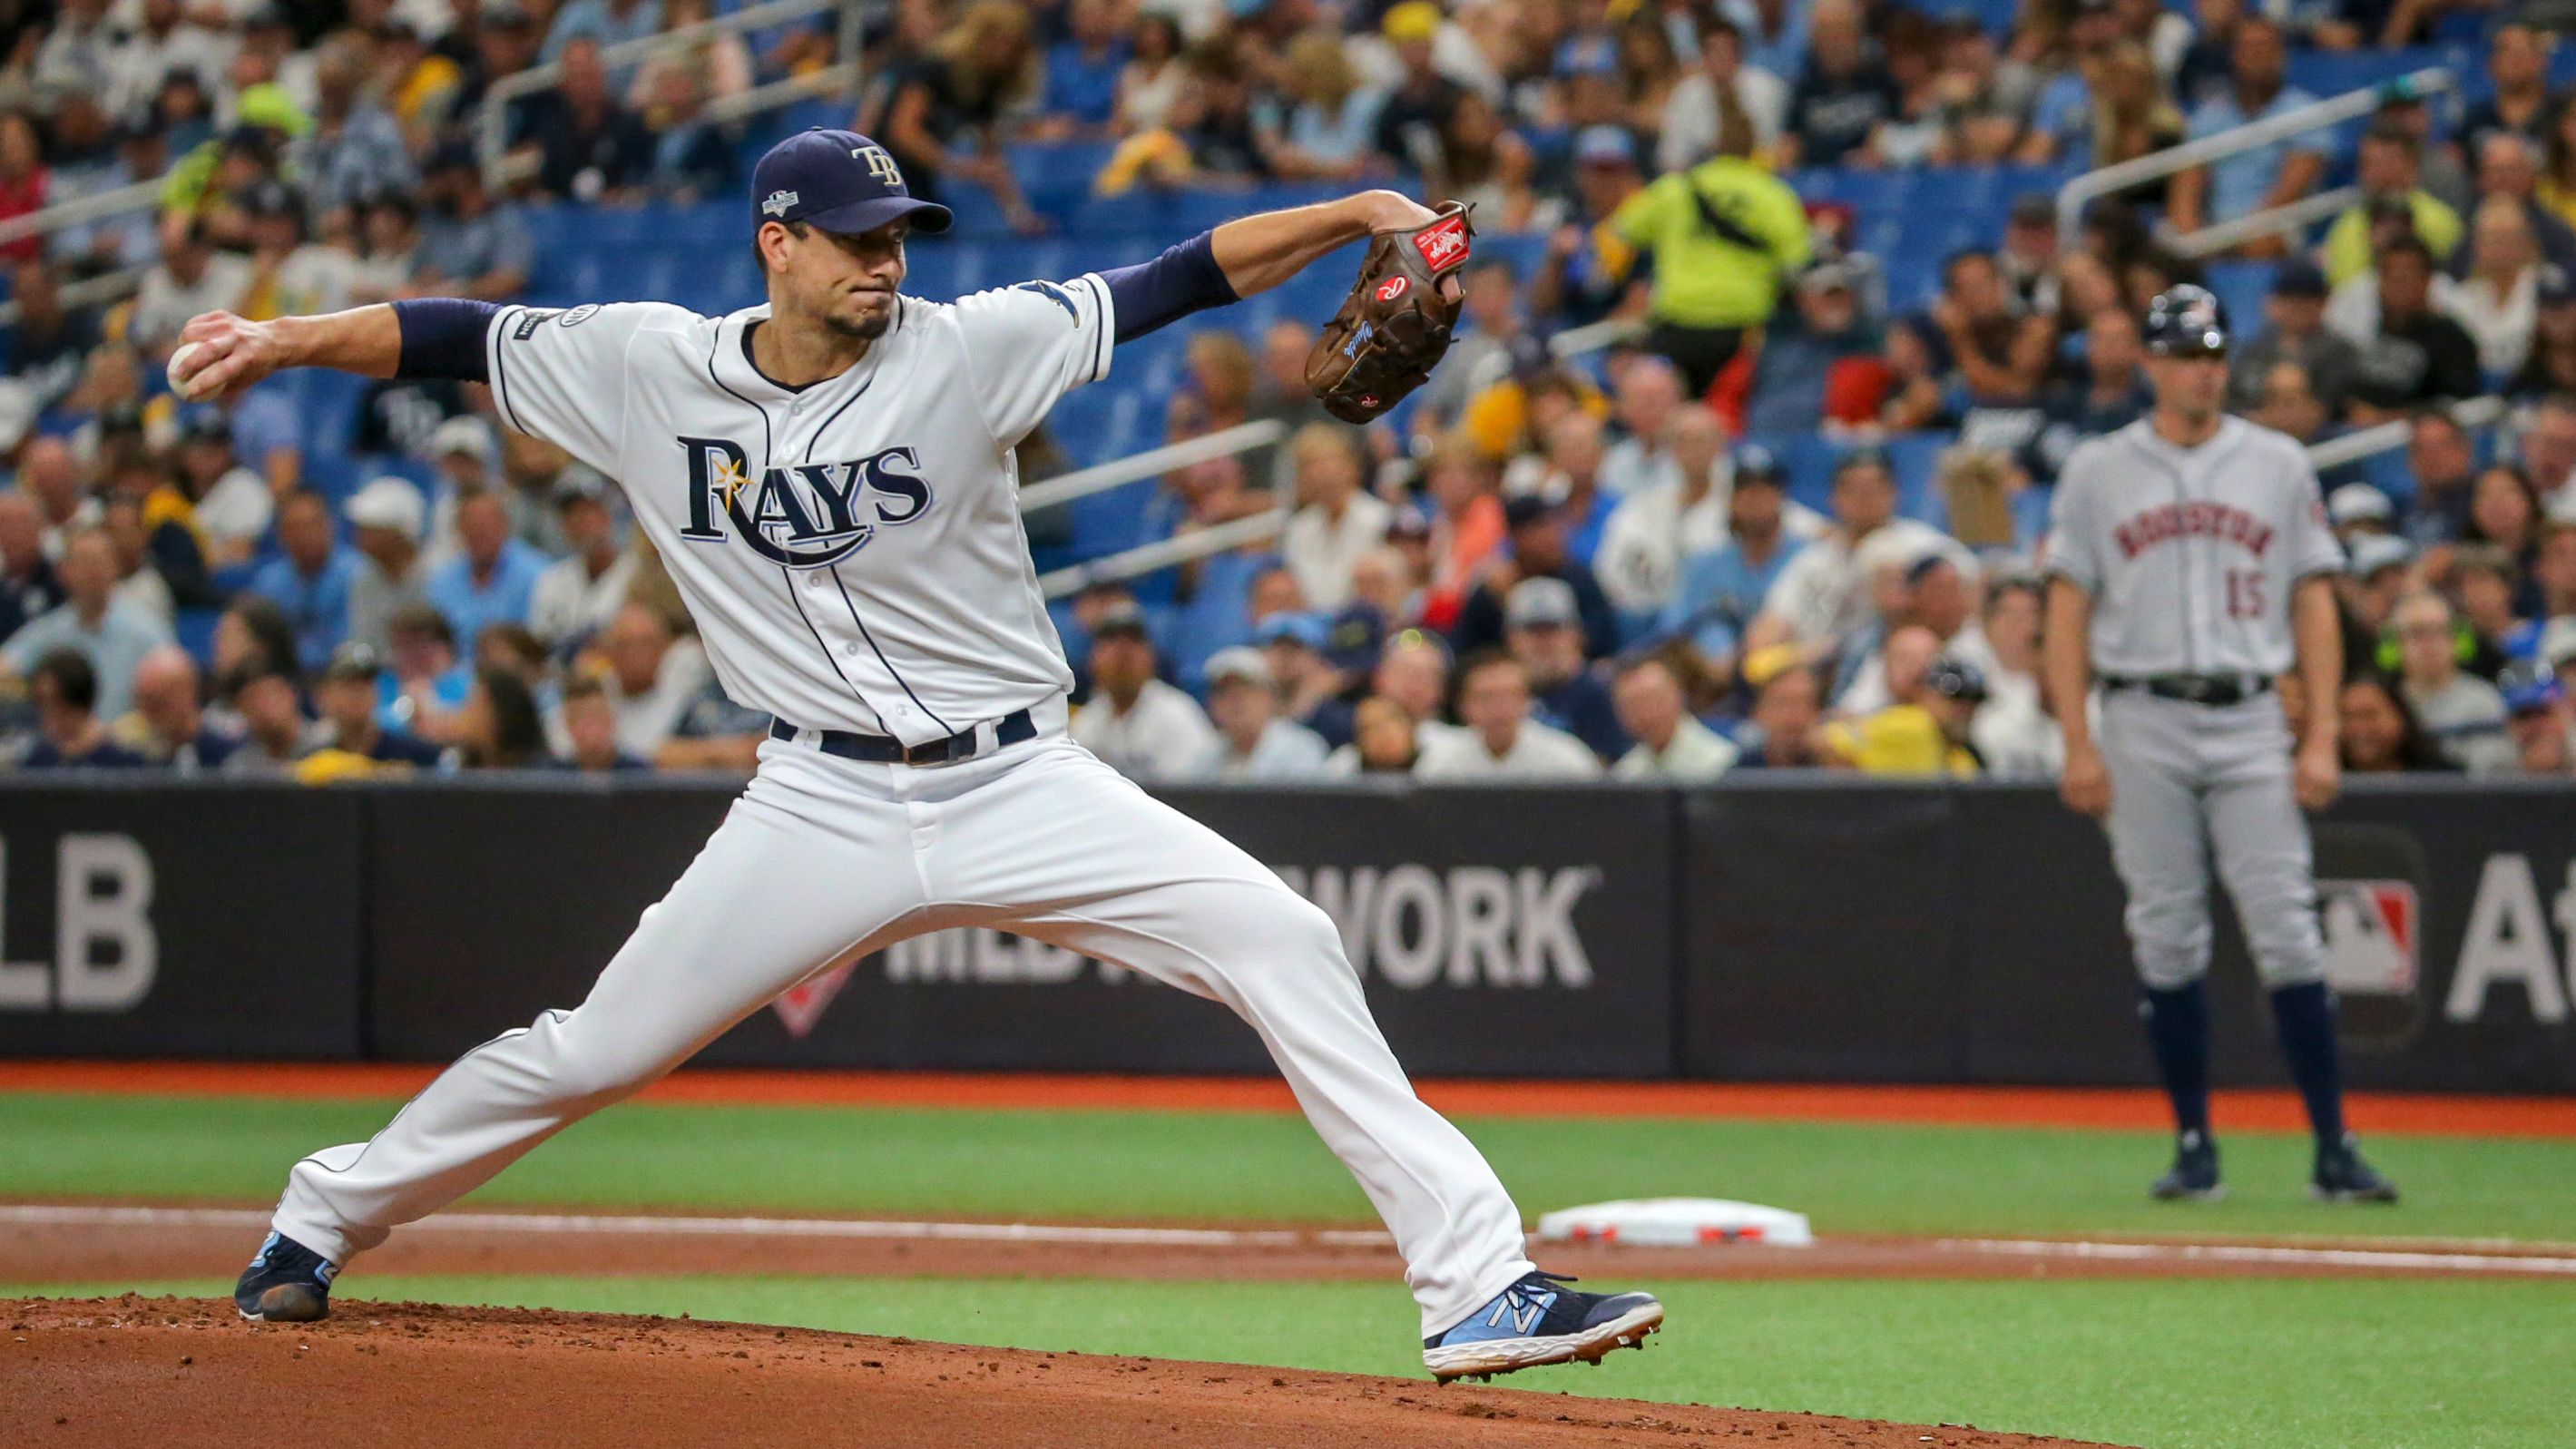 rays charlie morton on astros cheating i regret not doing more to stop it tampa bay times